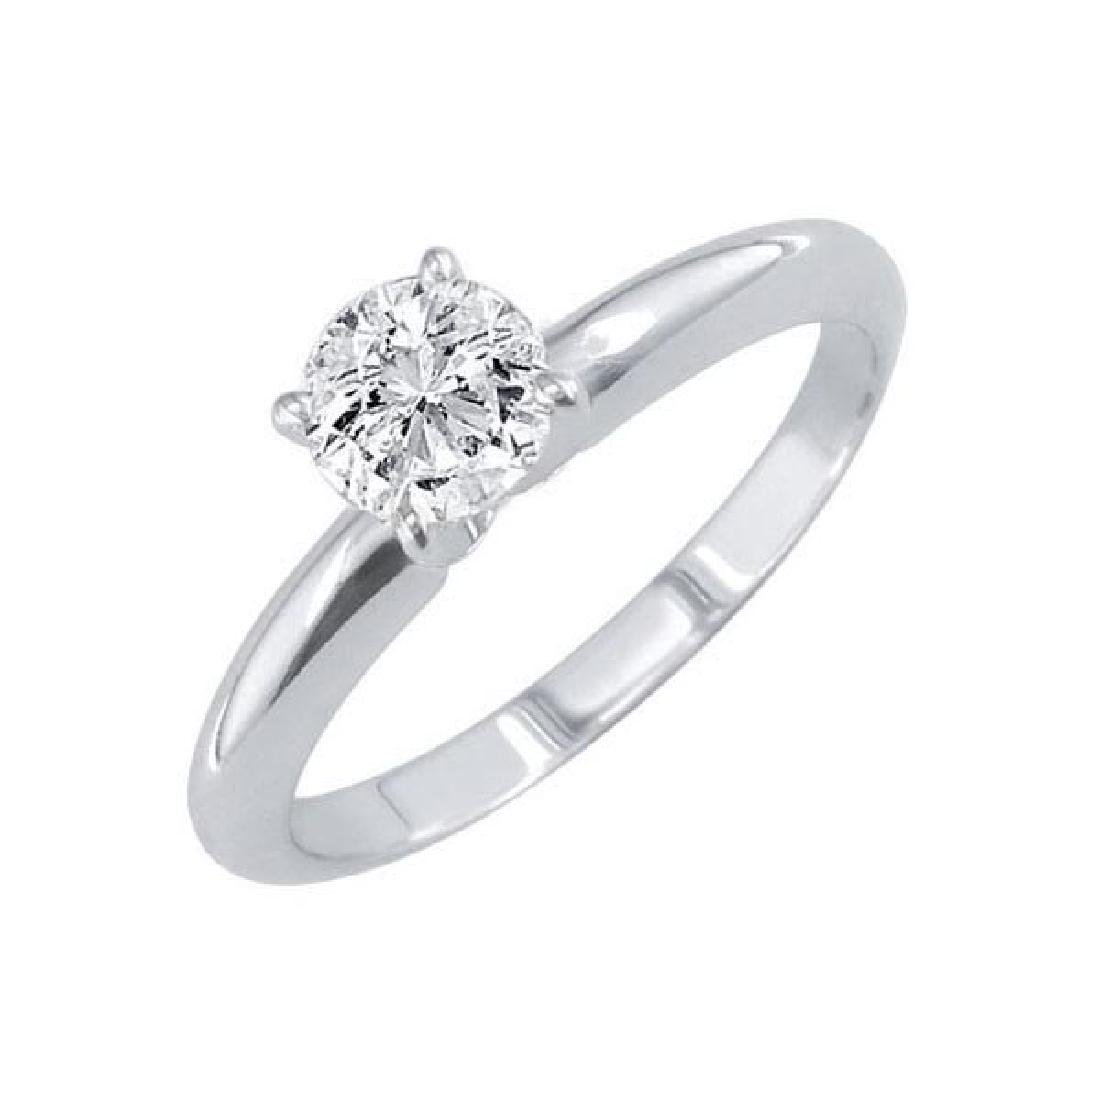 Certified 1.09 CTW Round Diamond Solitaire 14k Ring F/I